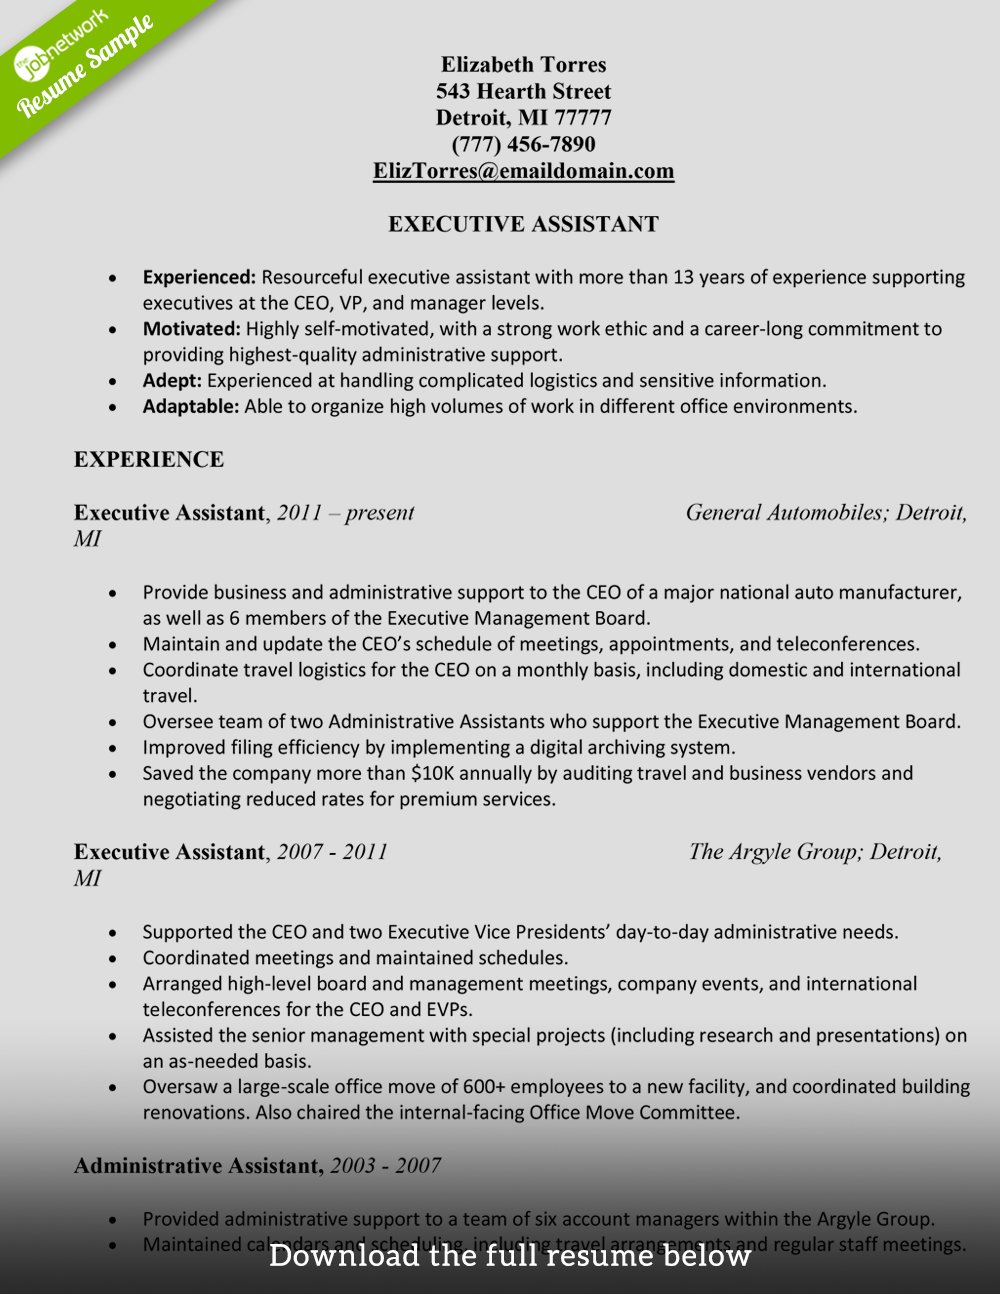 Administrative Assistant Resume Elizabeth Torres  Resume For Administrative Position